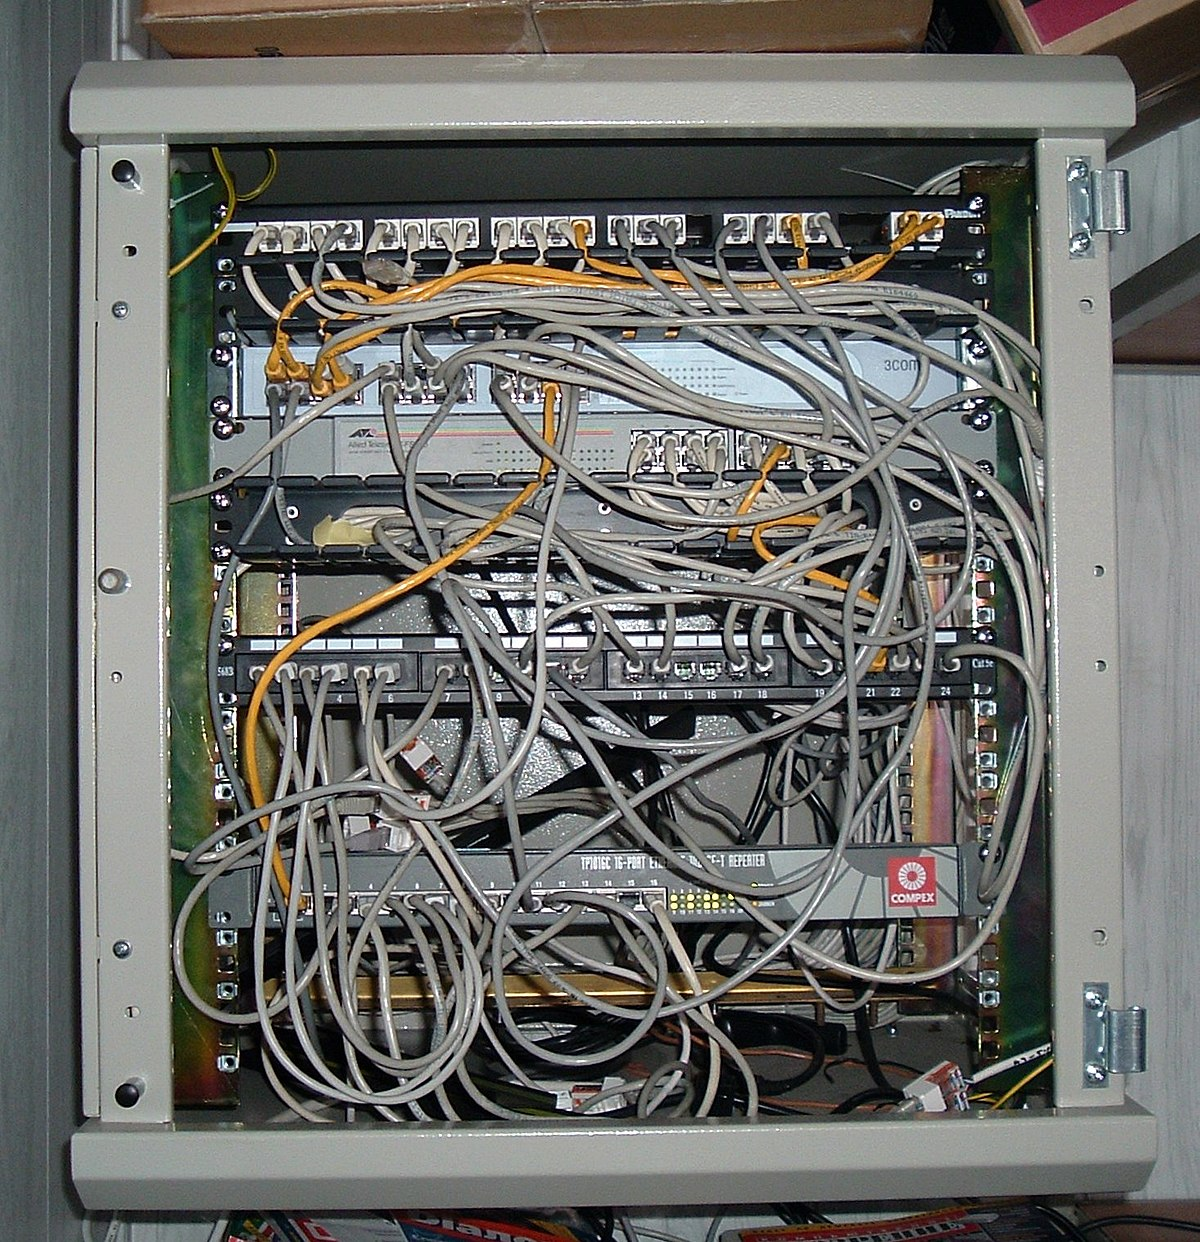 Wiring Closet Wikipedia Basement Phone